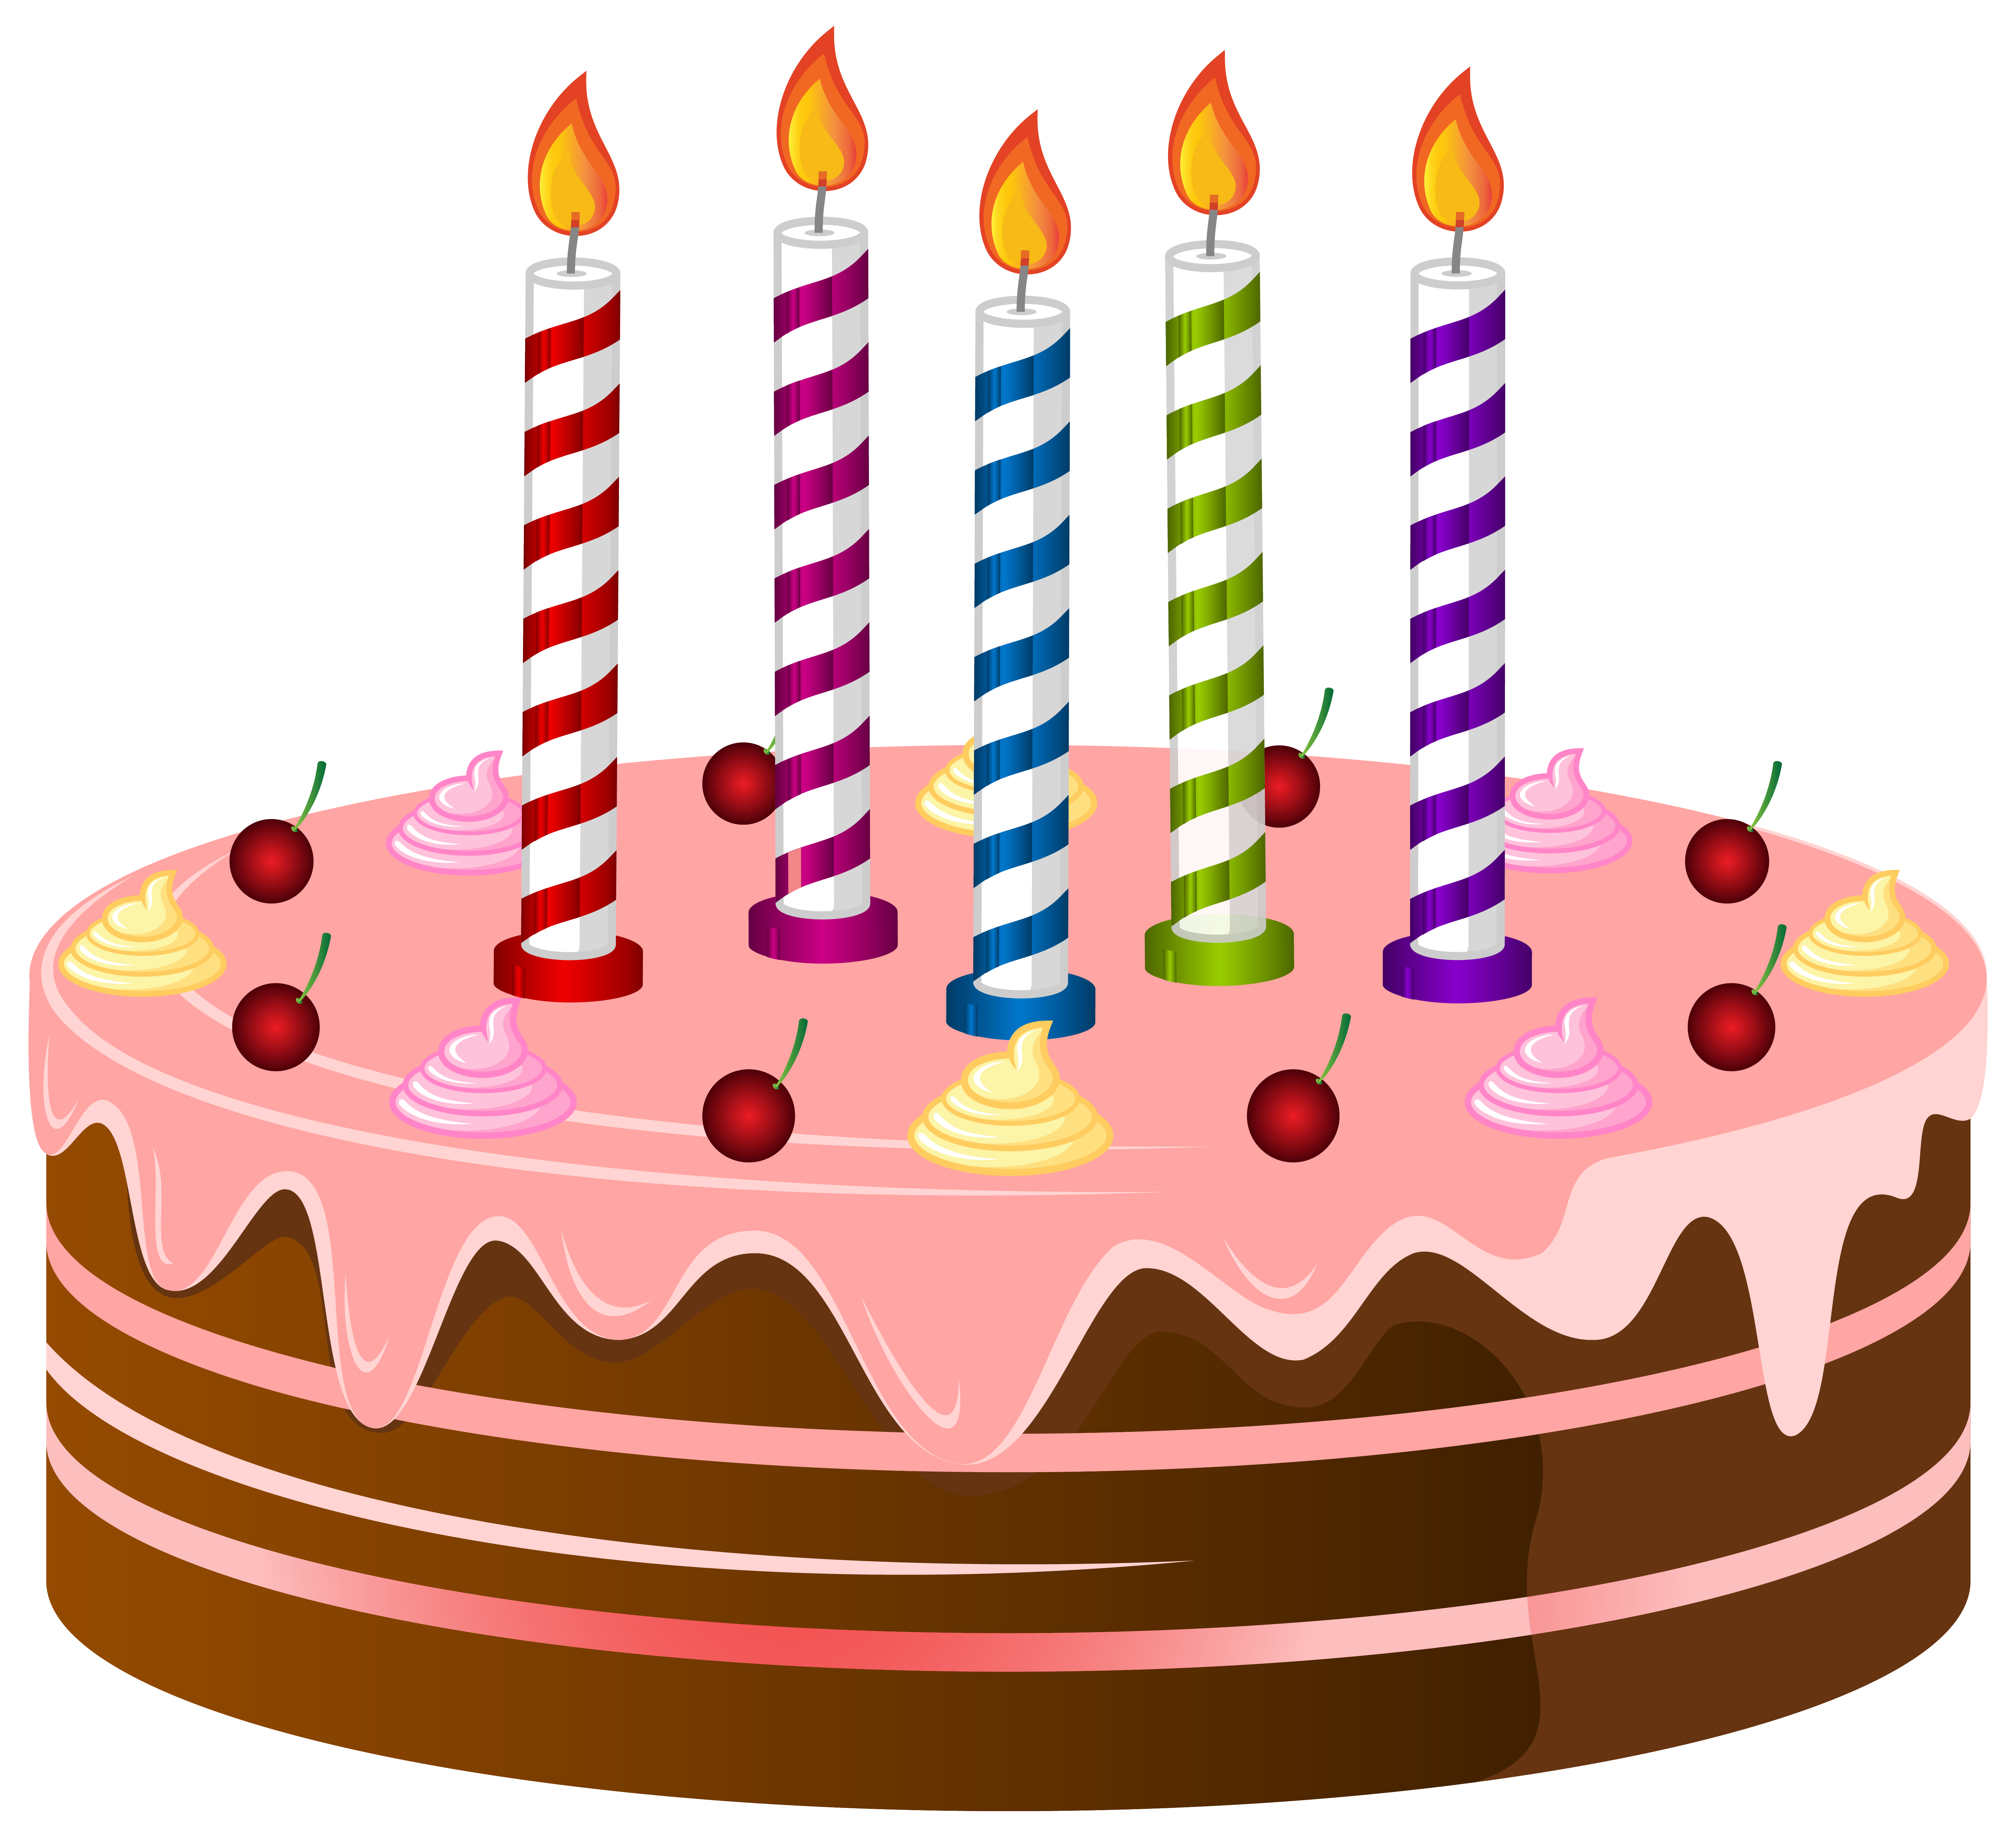 6315x5754 Free Birthday Cake Clip Art Free Clipart Images Clipartix